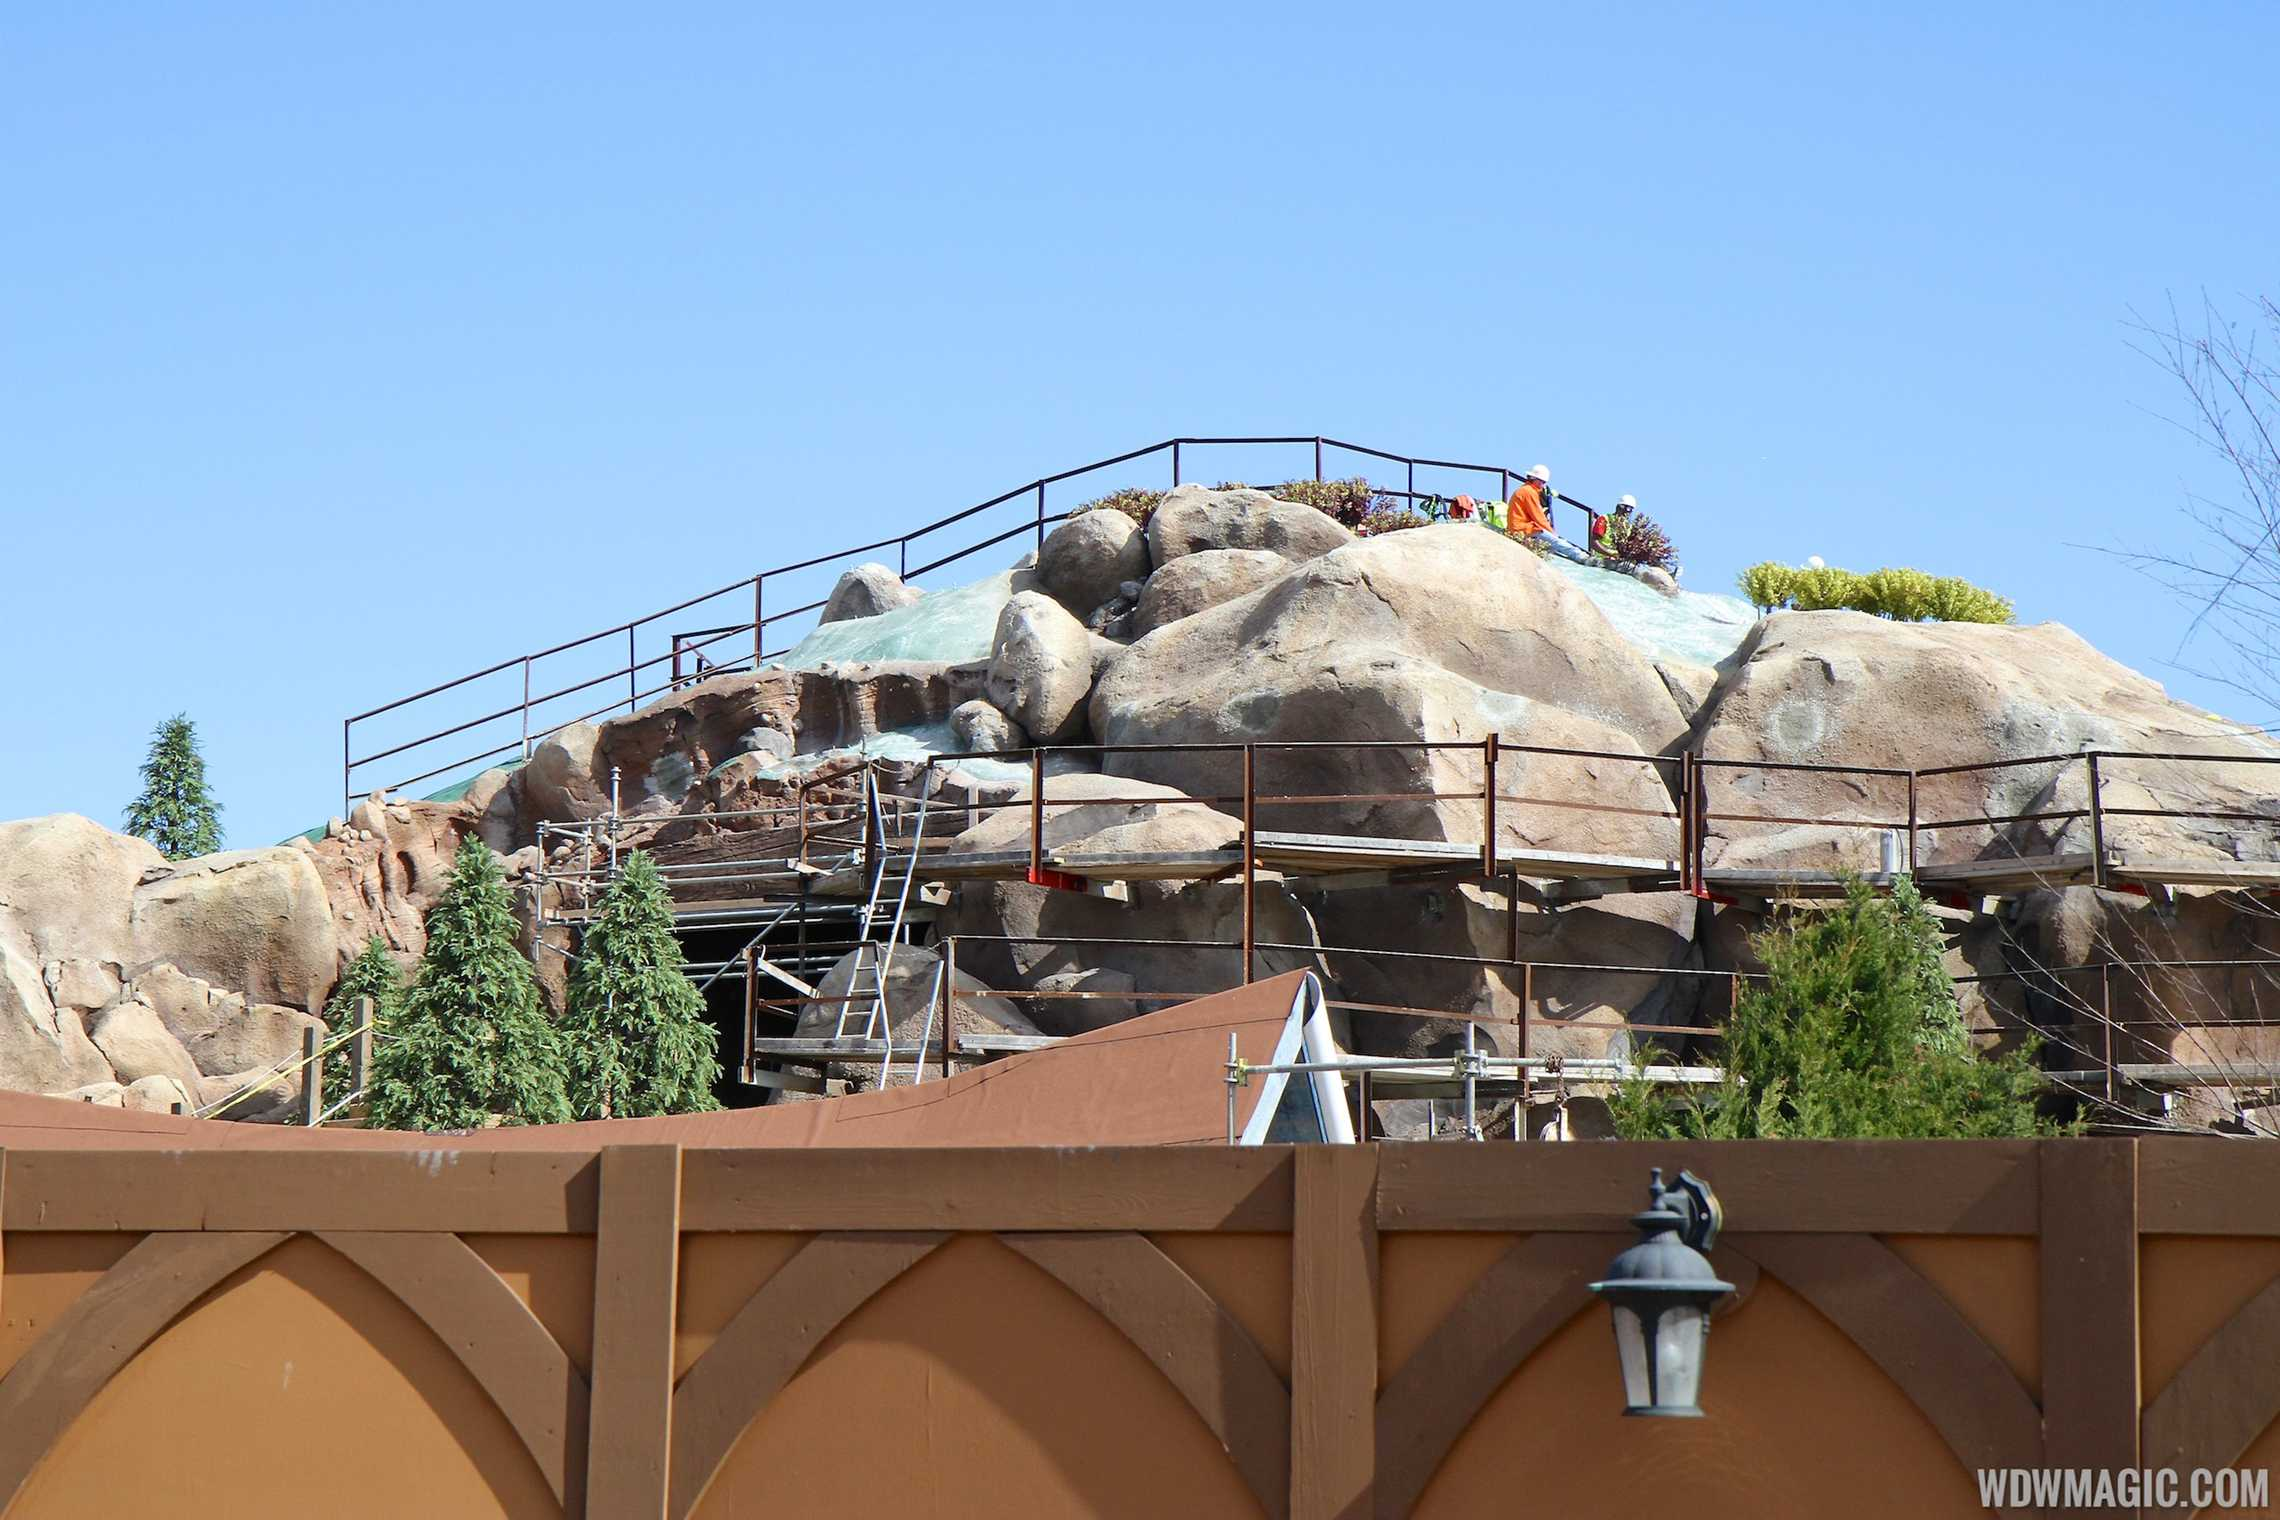 Trees and other landscaping at the Seven Dwarfs Mine Train